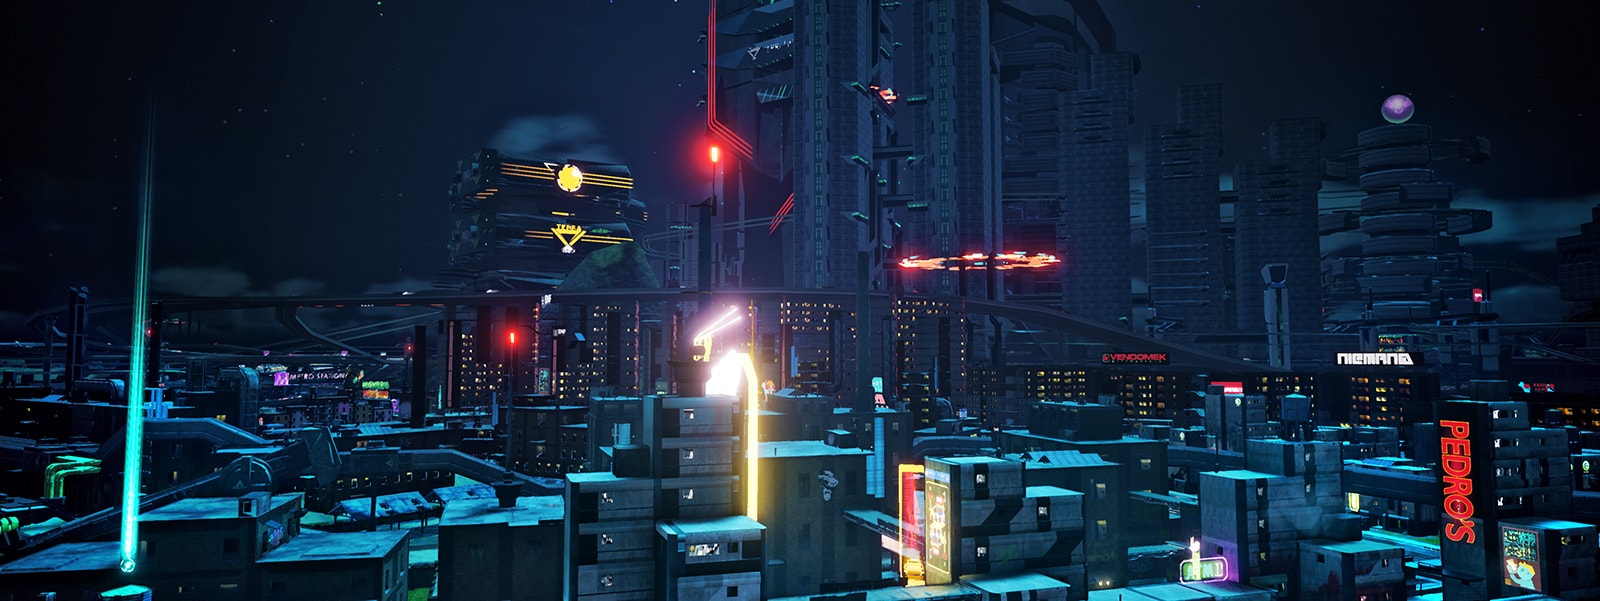 Captura de ecrã do Crackdown 3 com HDR